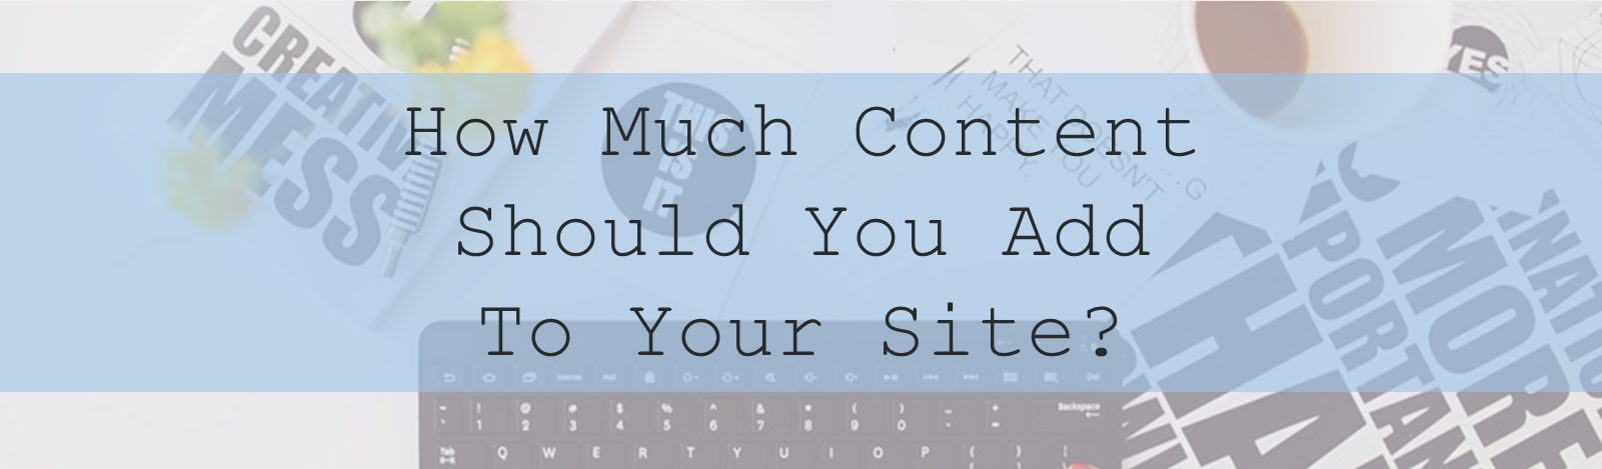 How Much Content Should You Add to Your Site?